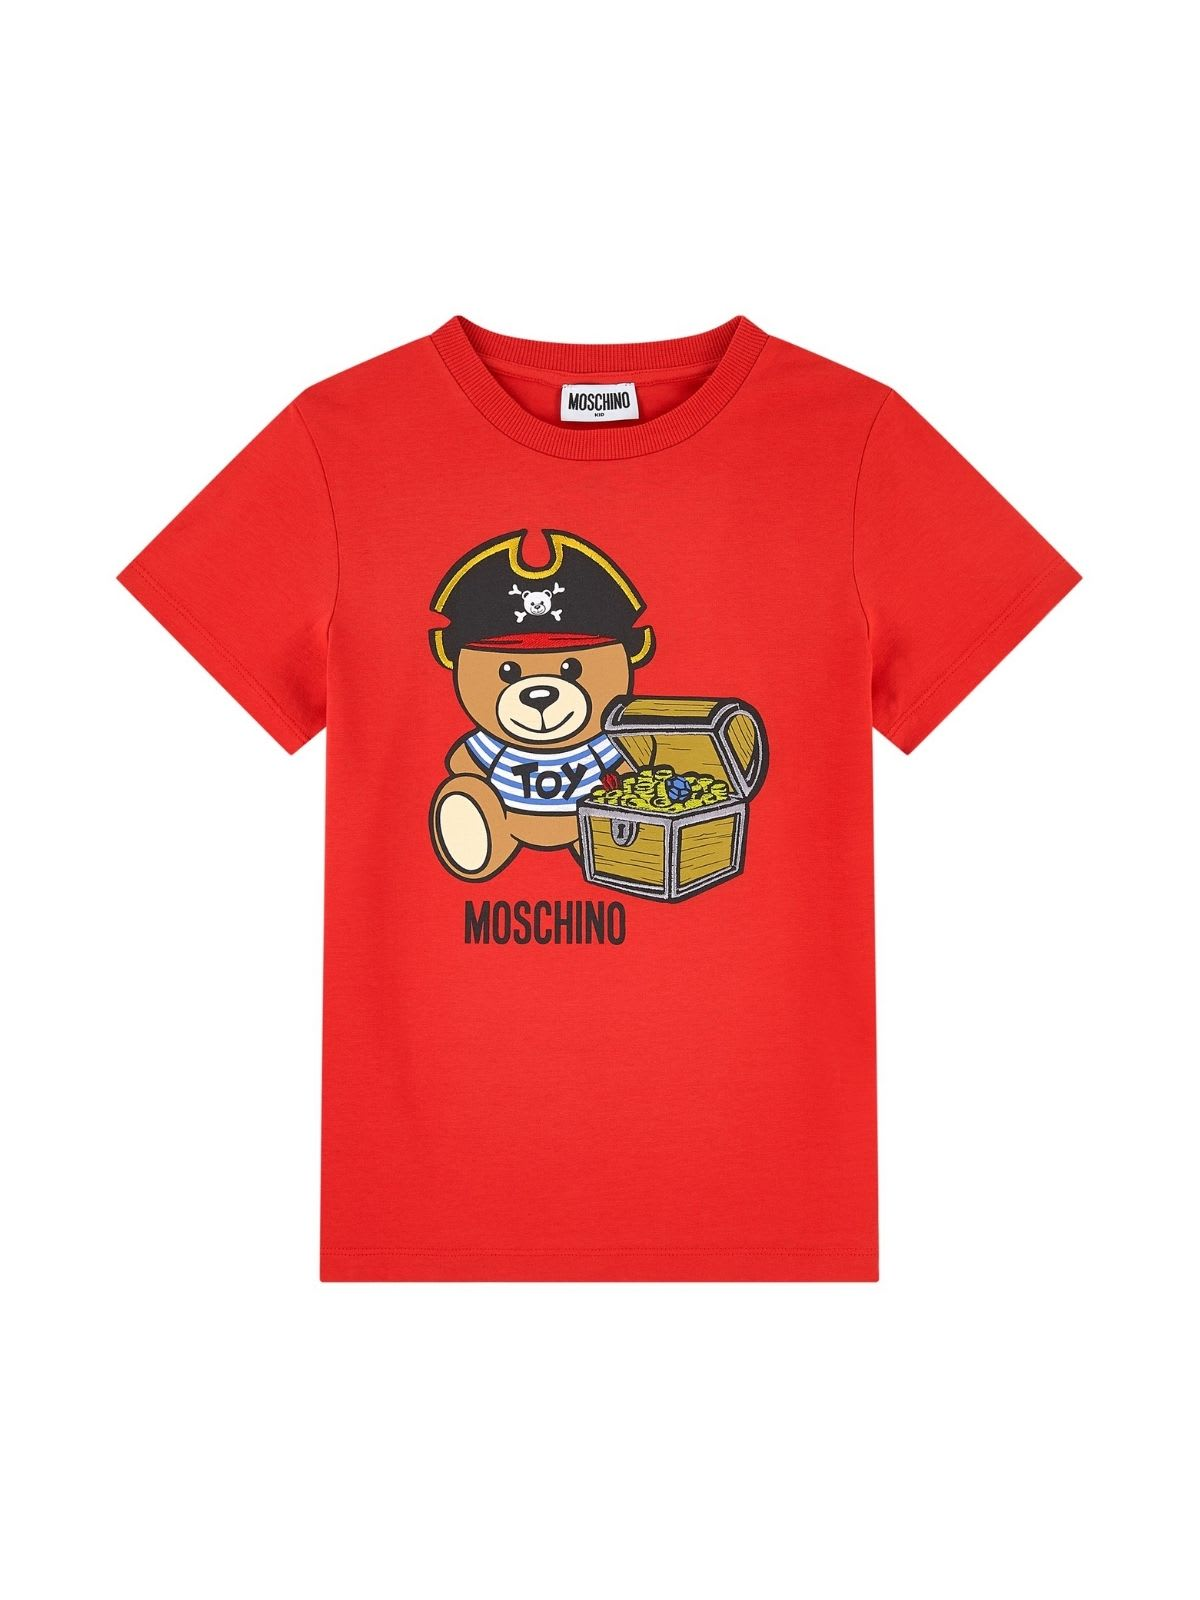 Moschino T-SHIRT W/PIRATE TEDDY